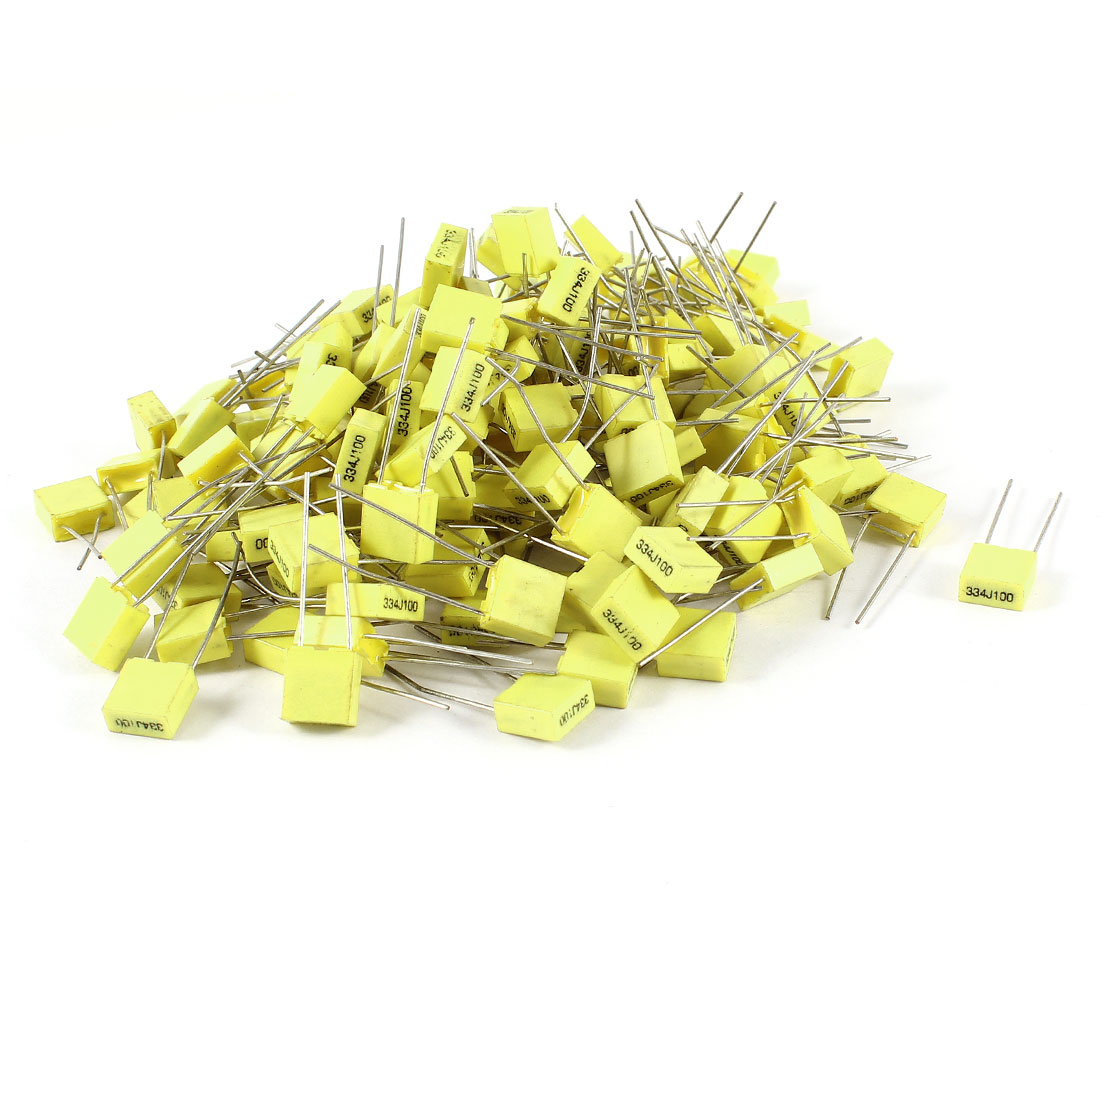 150 Pcs 100V 0.33uF 330NF Radial Lead Box Type Film Correction Capacitors Yellow